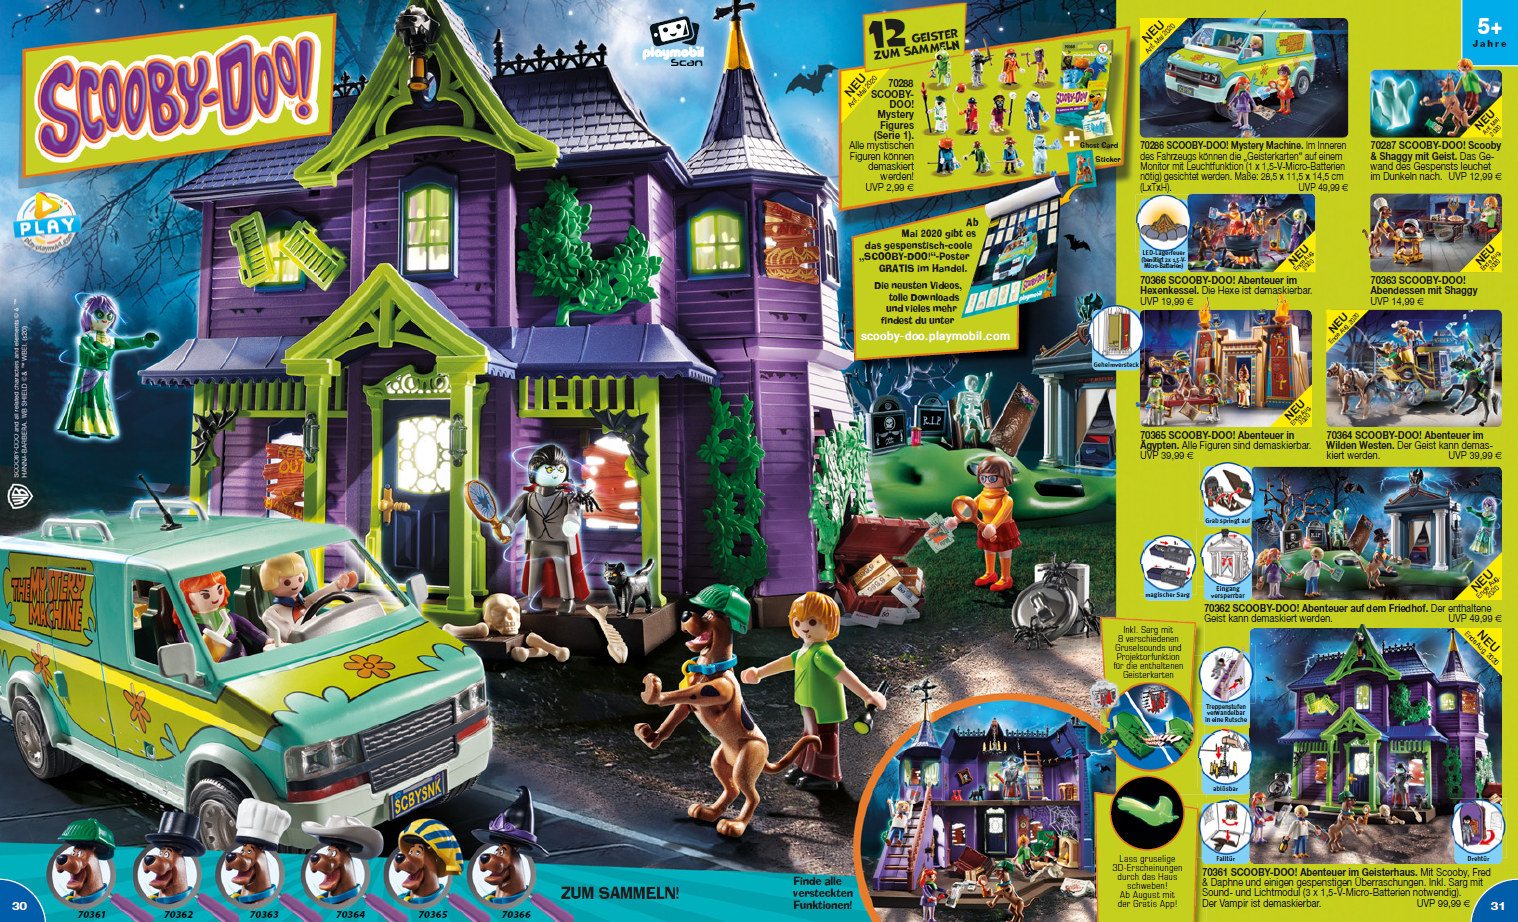 Playmobil Neuheit Scooby-Doo ab Ende August 2020